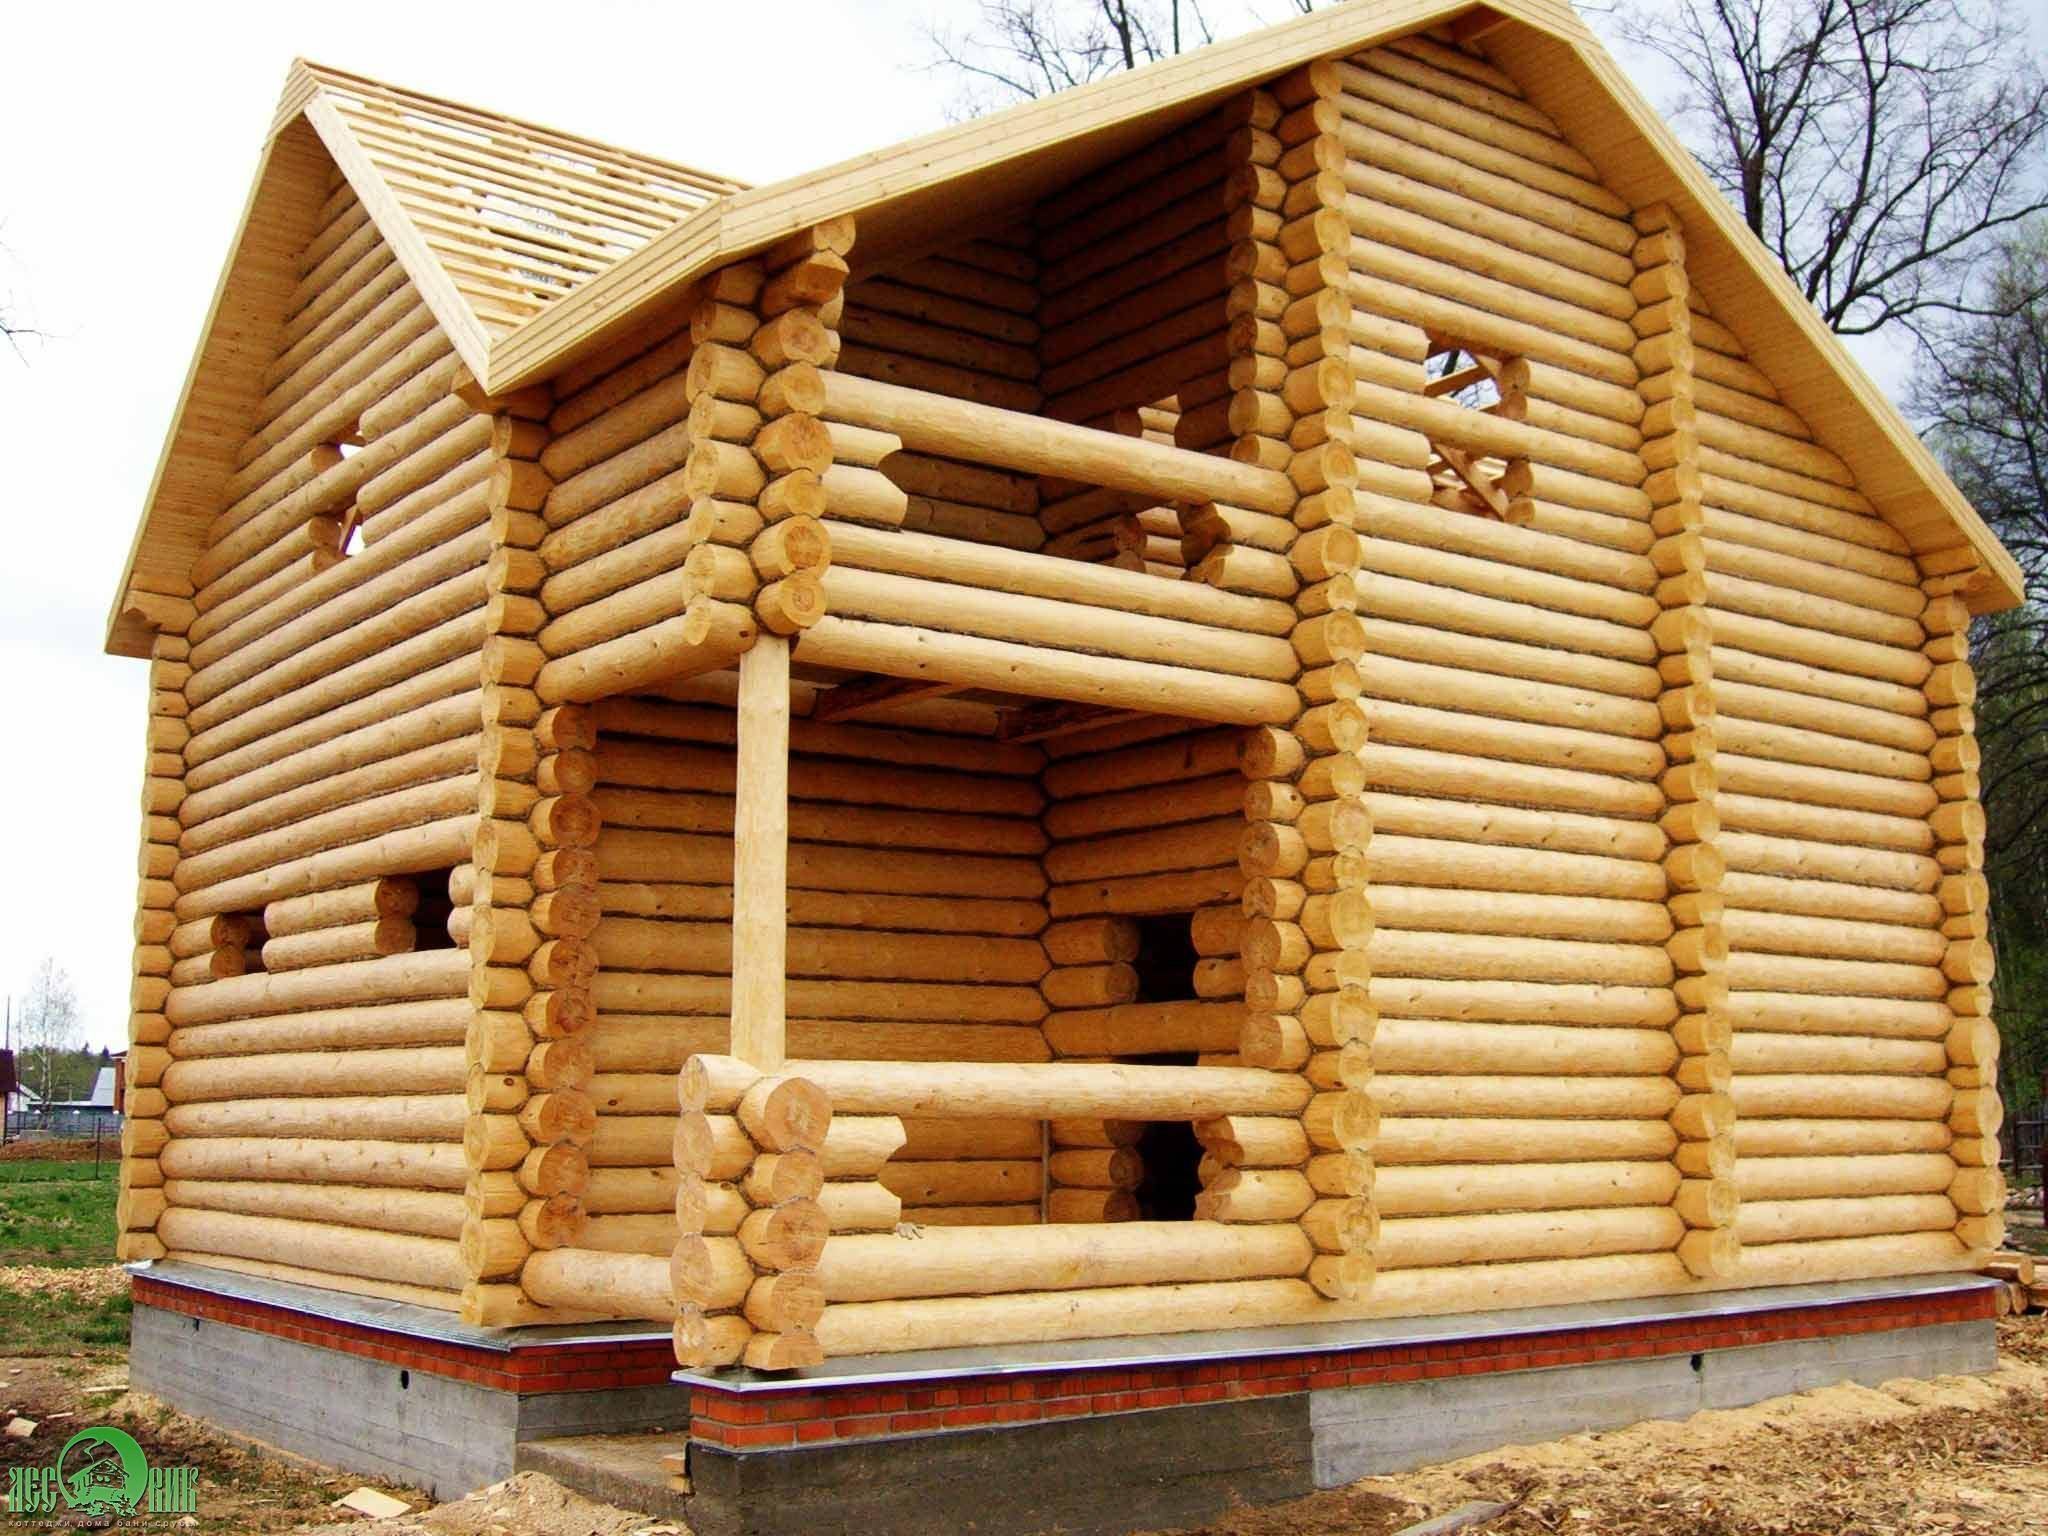 According to the law, each Russian citizen relies on 150 cubic meters of forest FREE for building a house every 25 years and another 50 cubic meters of forest every 5 years for home repairs